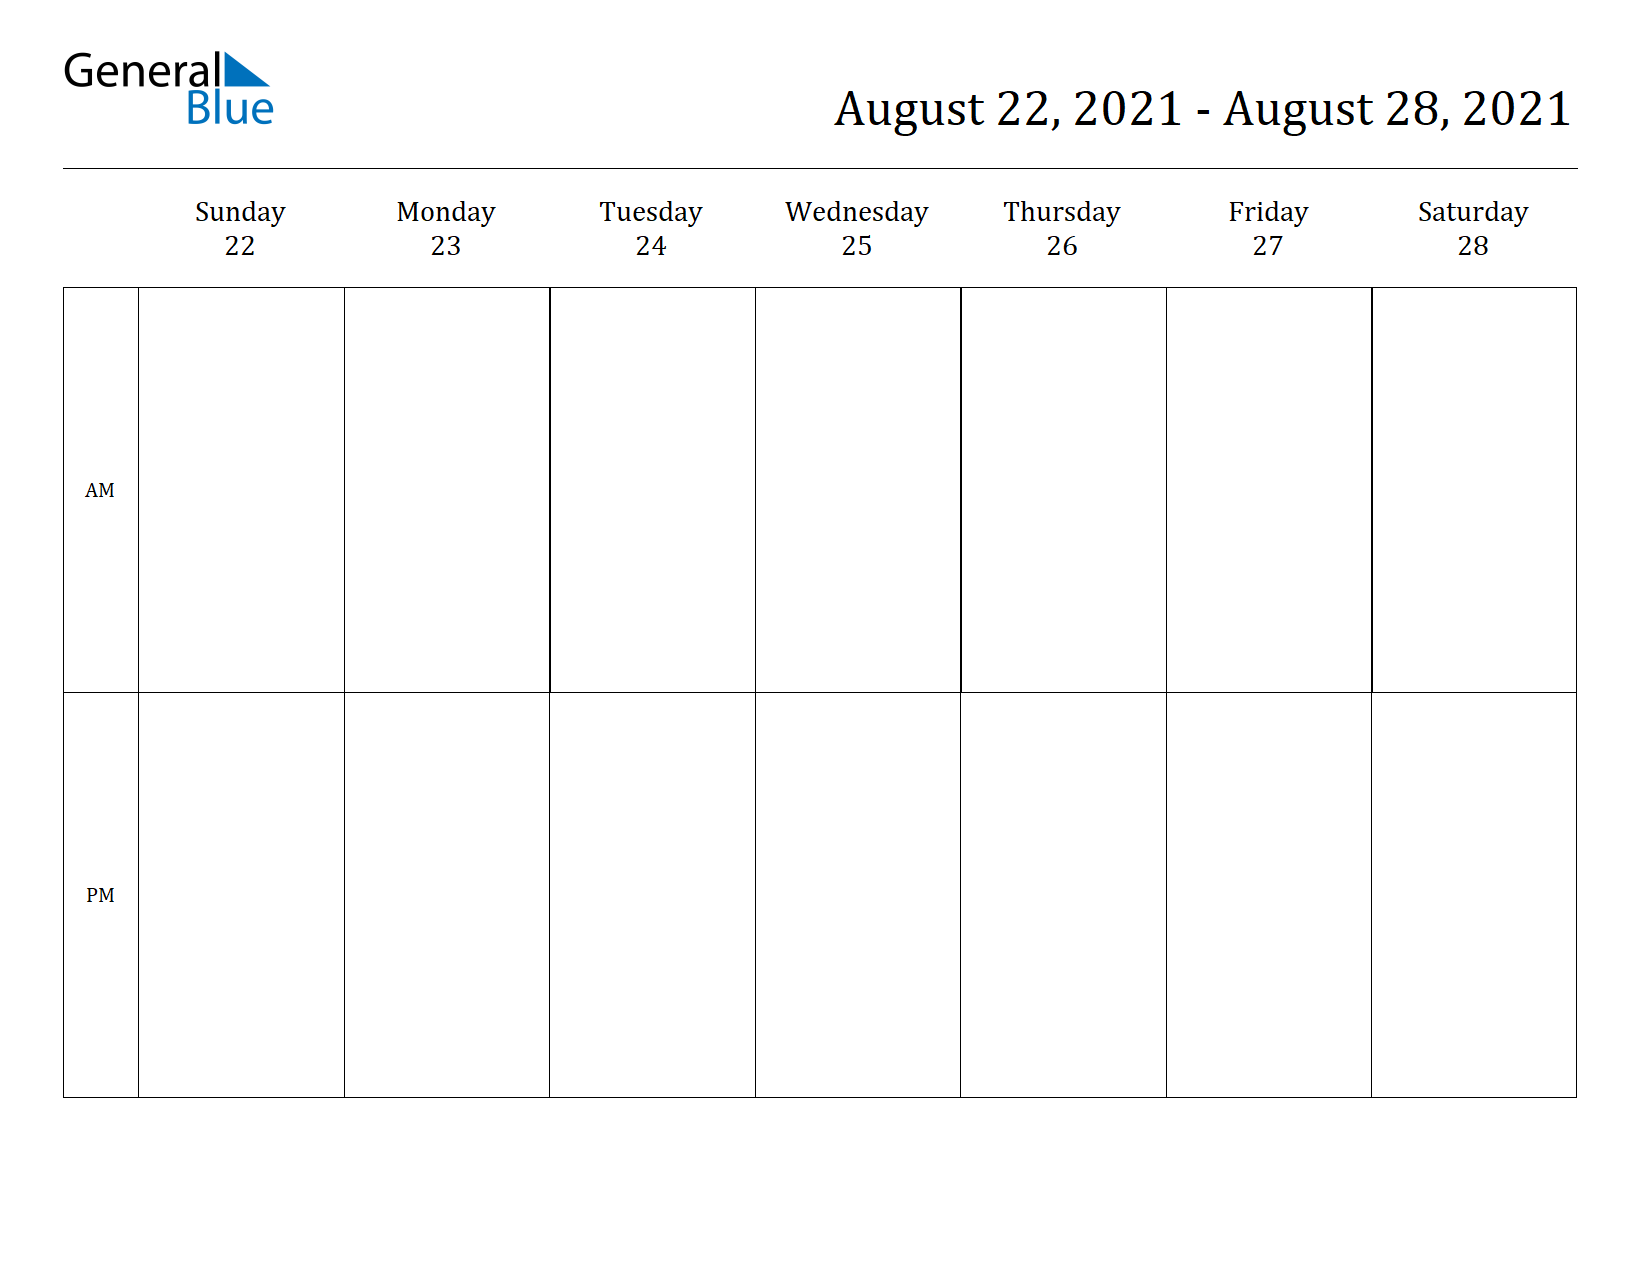 Weekly Calendar for Aug 22, 2021 to Aug 28, 2021